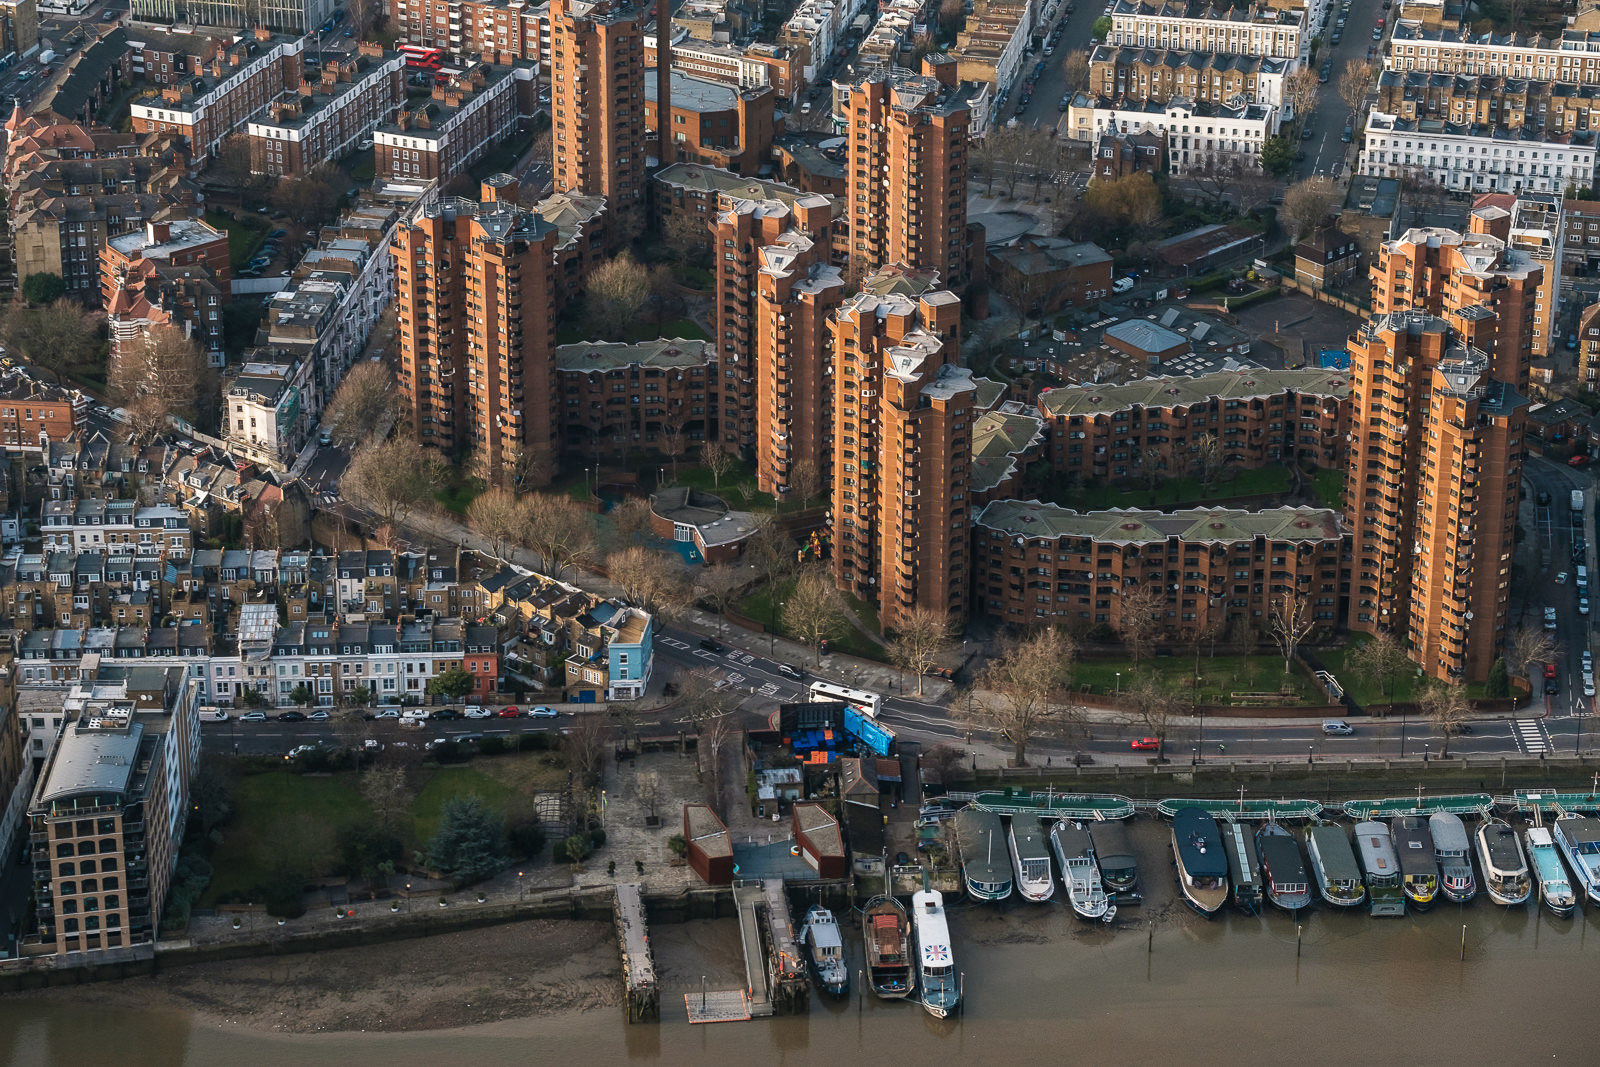 Worlds end estate, Chelsea; X-T2 ISO800 50-140mm f5.0 1/1000s